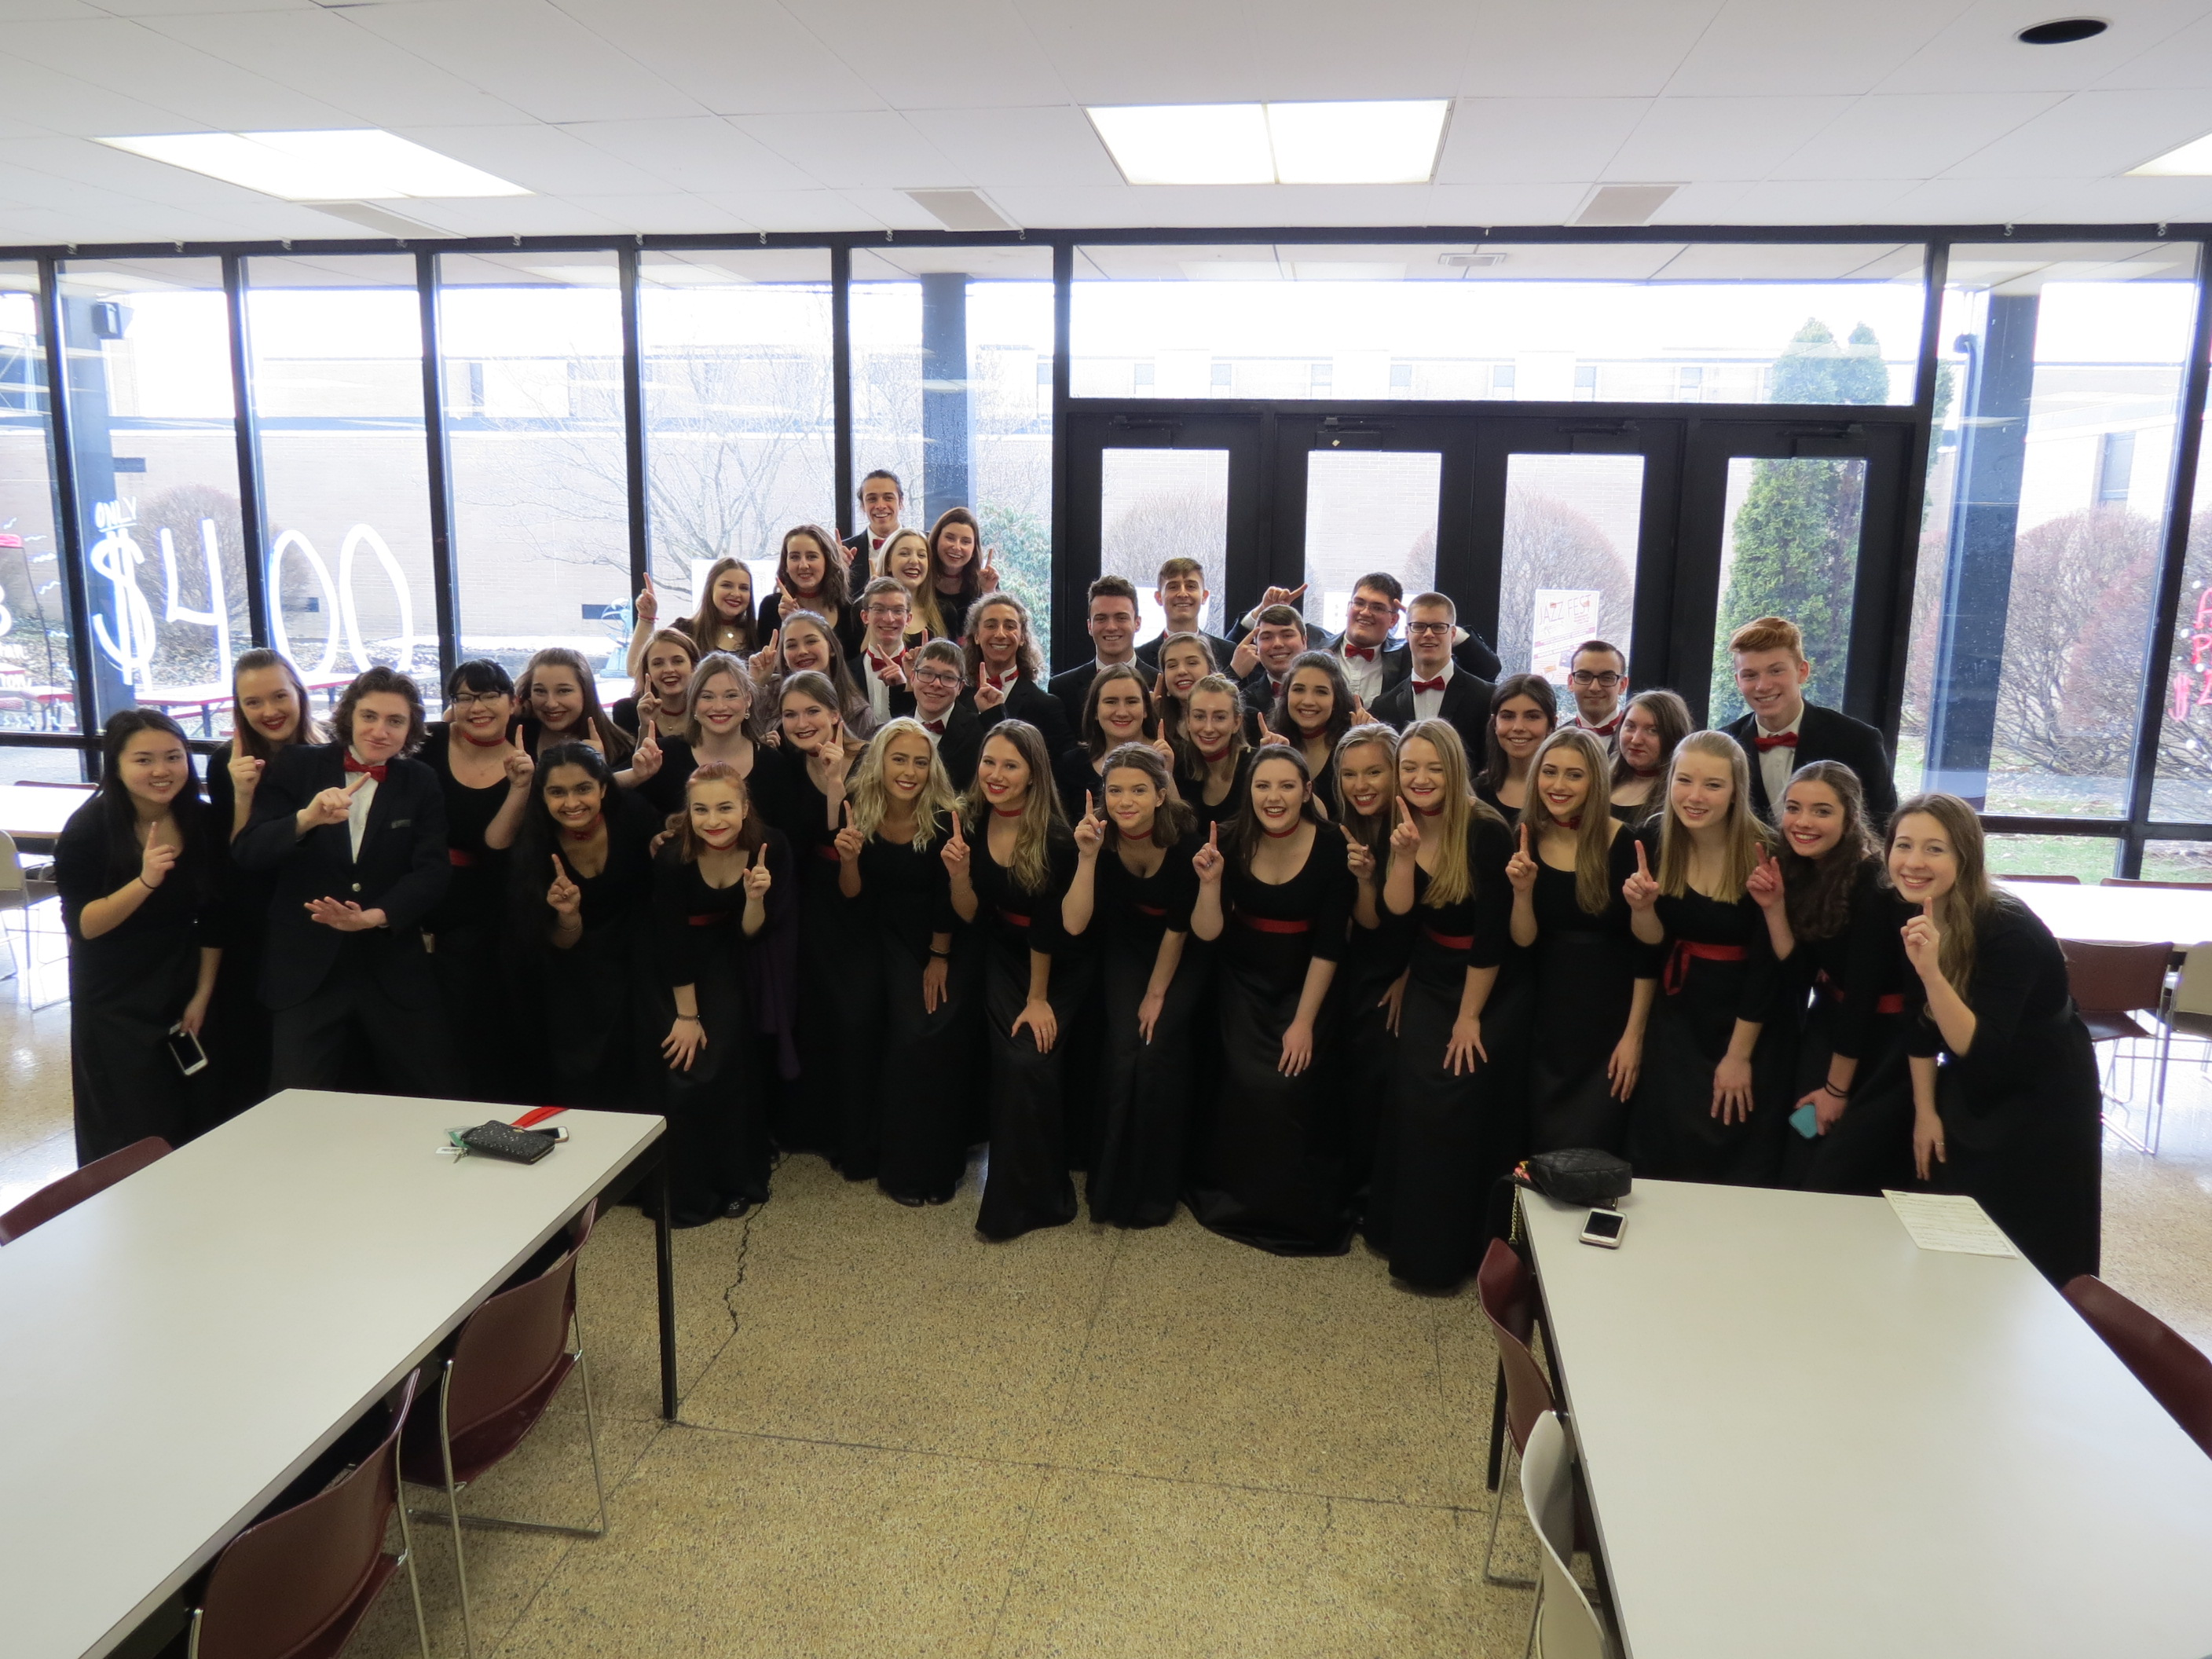 choir students